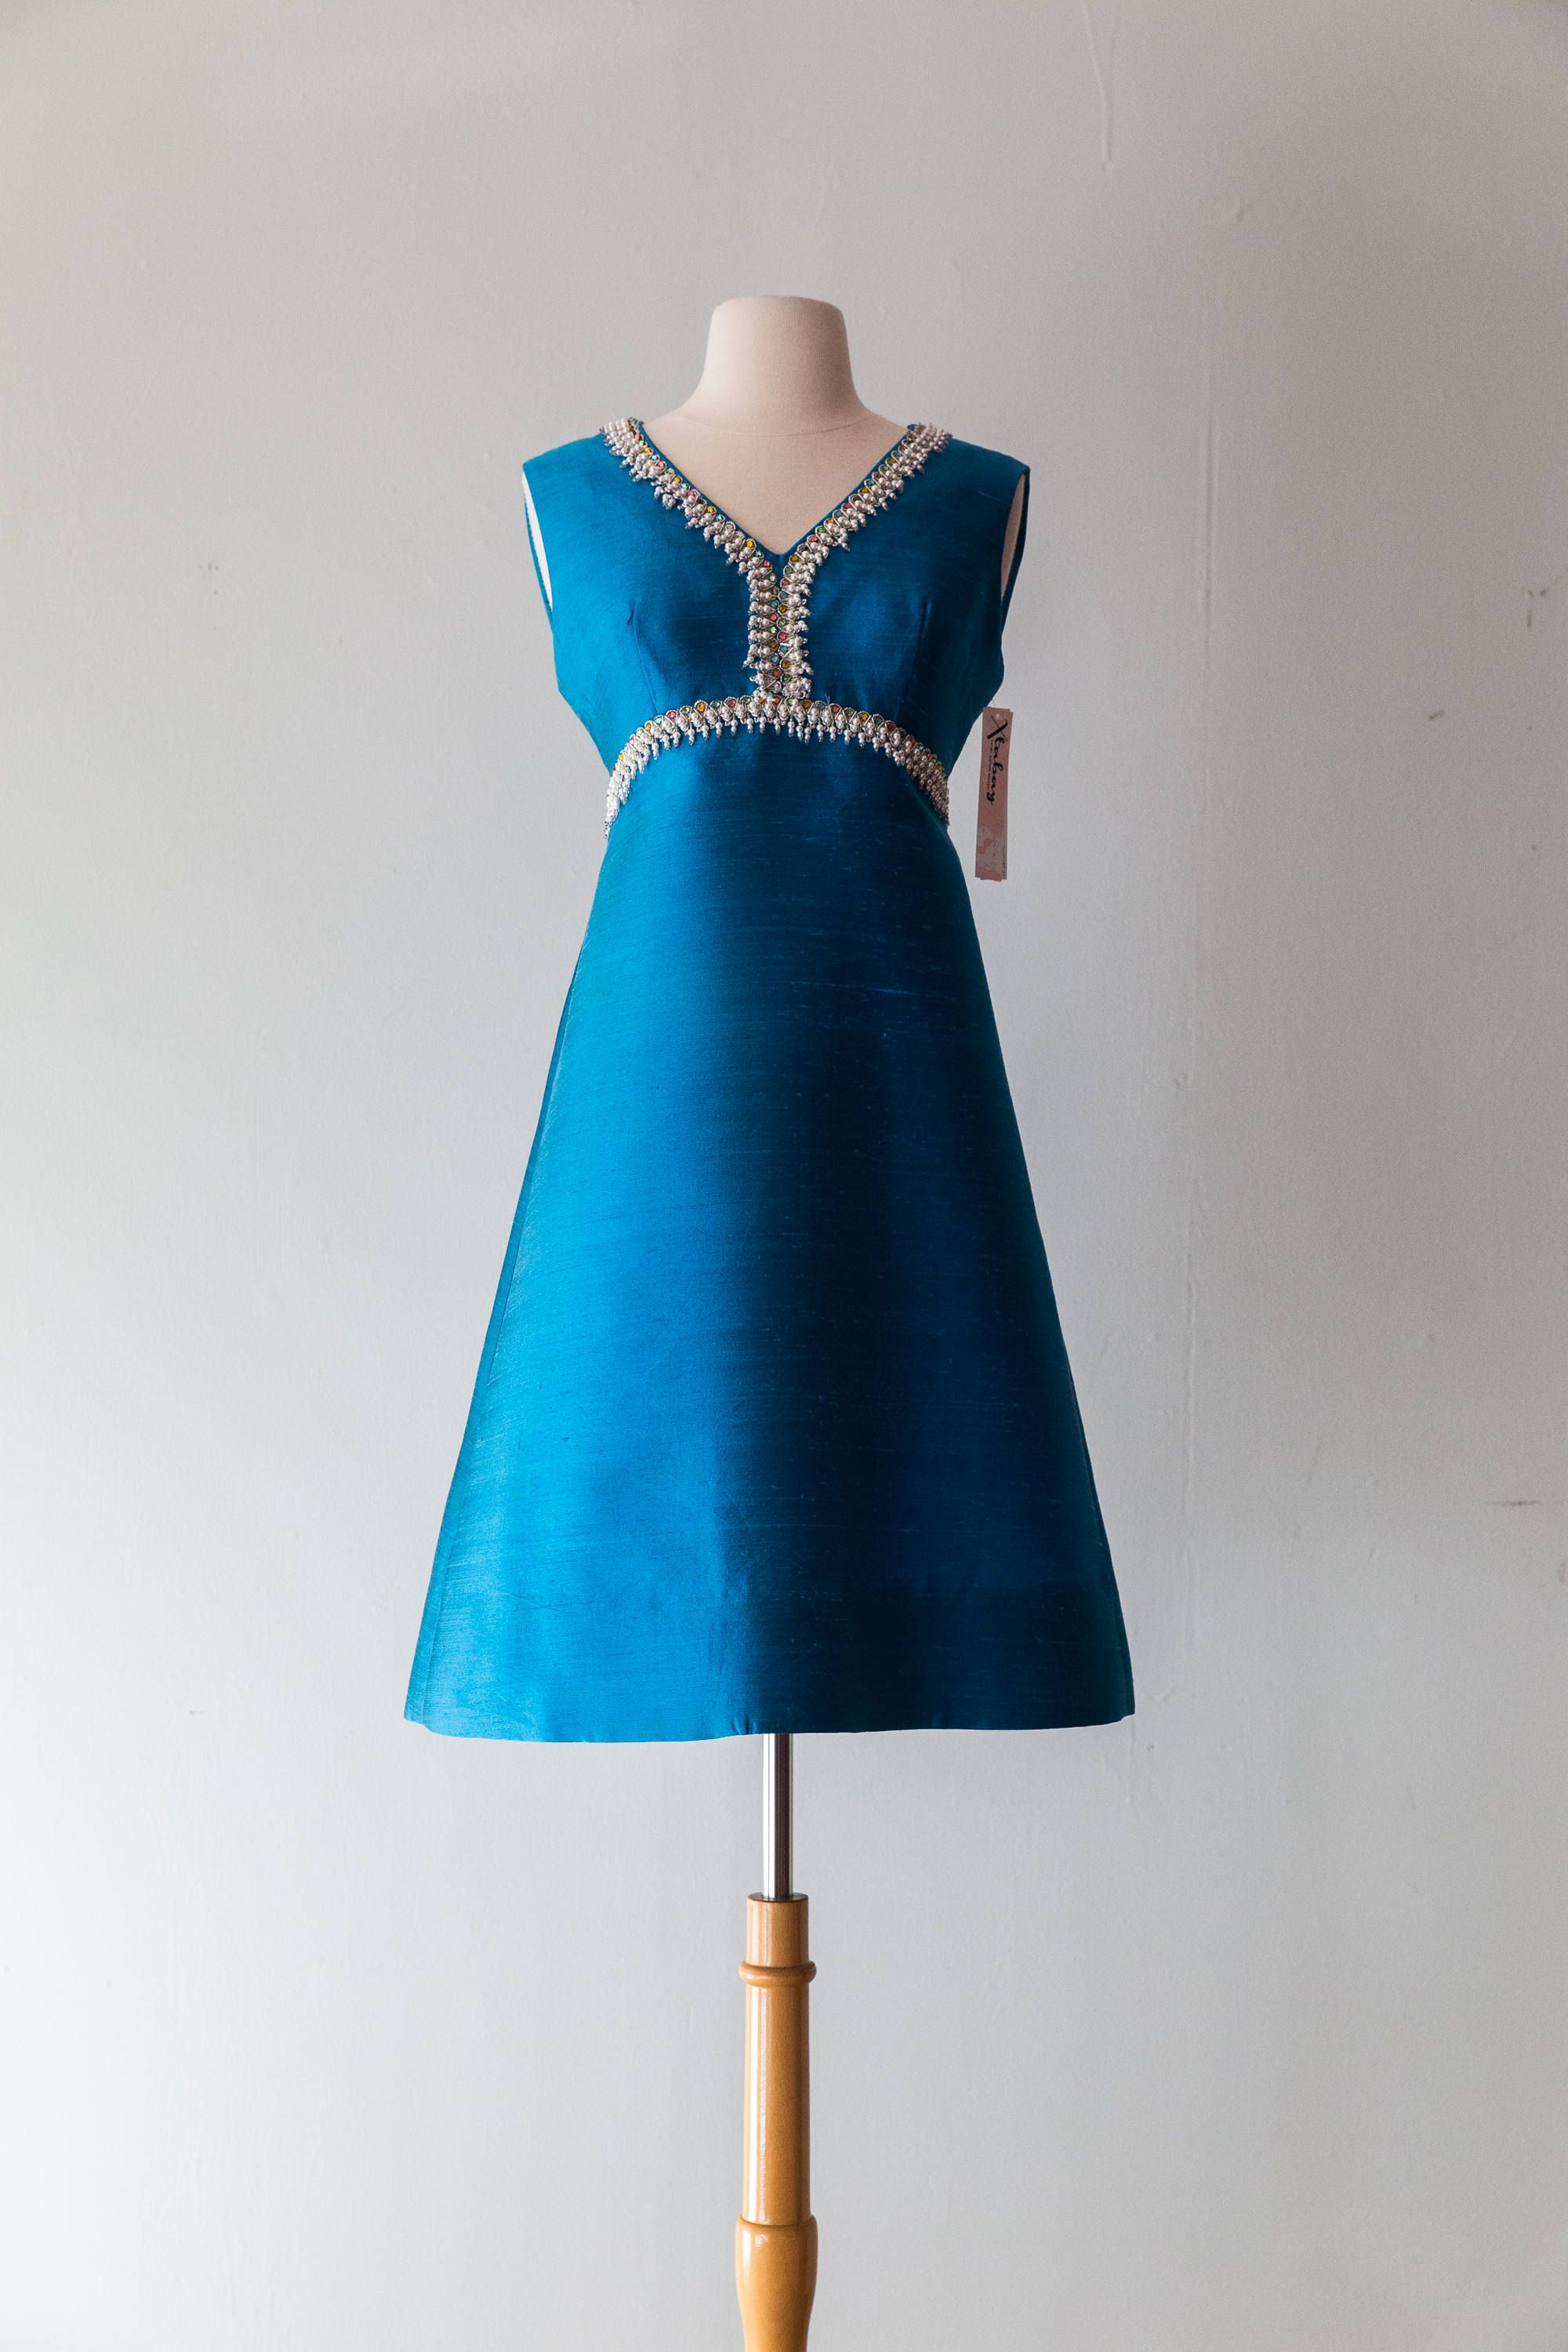 Vintage 1960s Dress 60s Beaded Teal Blue Cocktail Dress With Rhinestones Mod Party Dress Waist 29 By Xtabayvintage On Etsy [ 3000 x 2000 Pixel ]